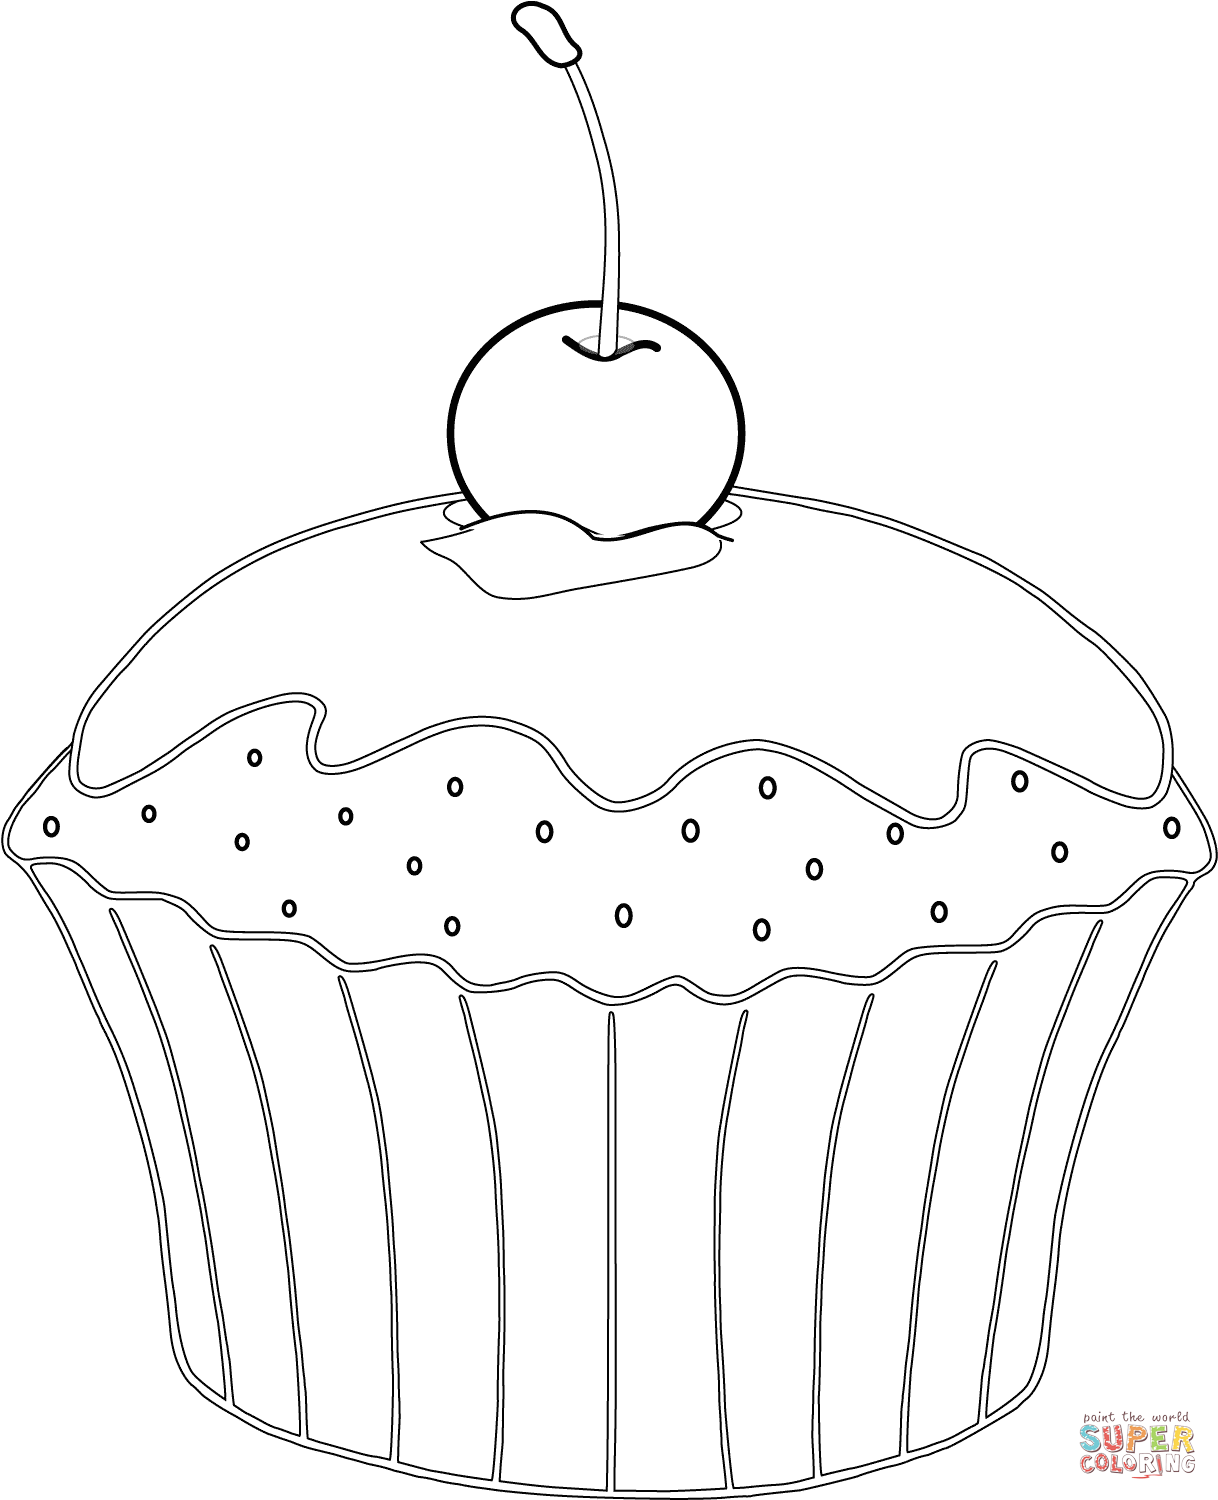 muffin coloring pages for kids - photo#26